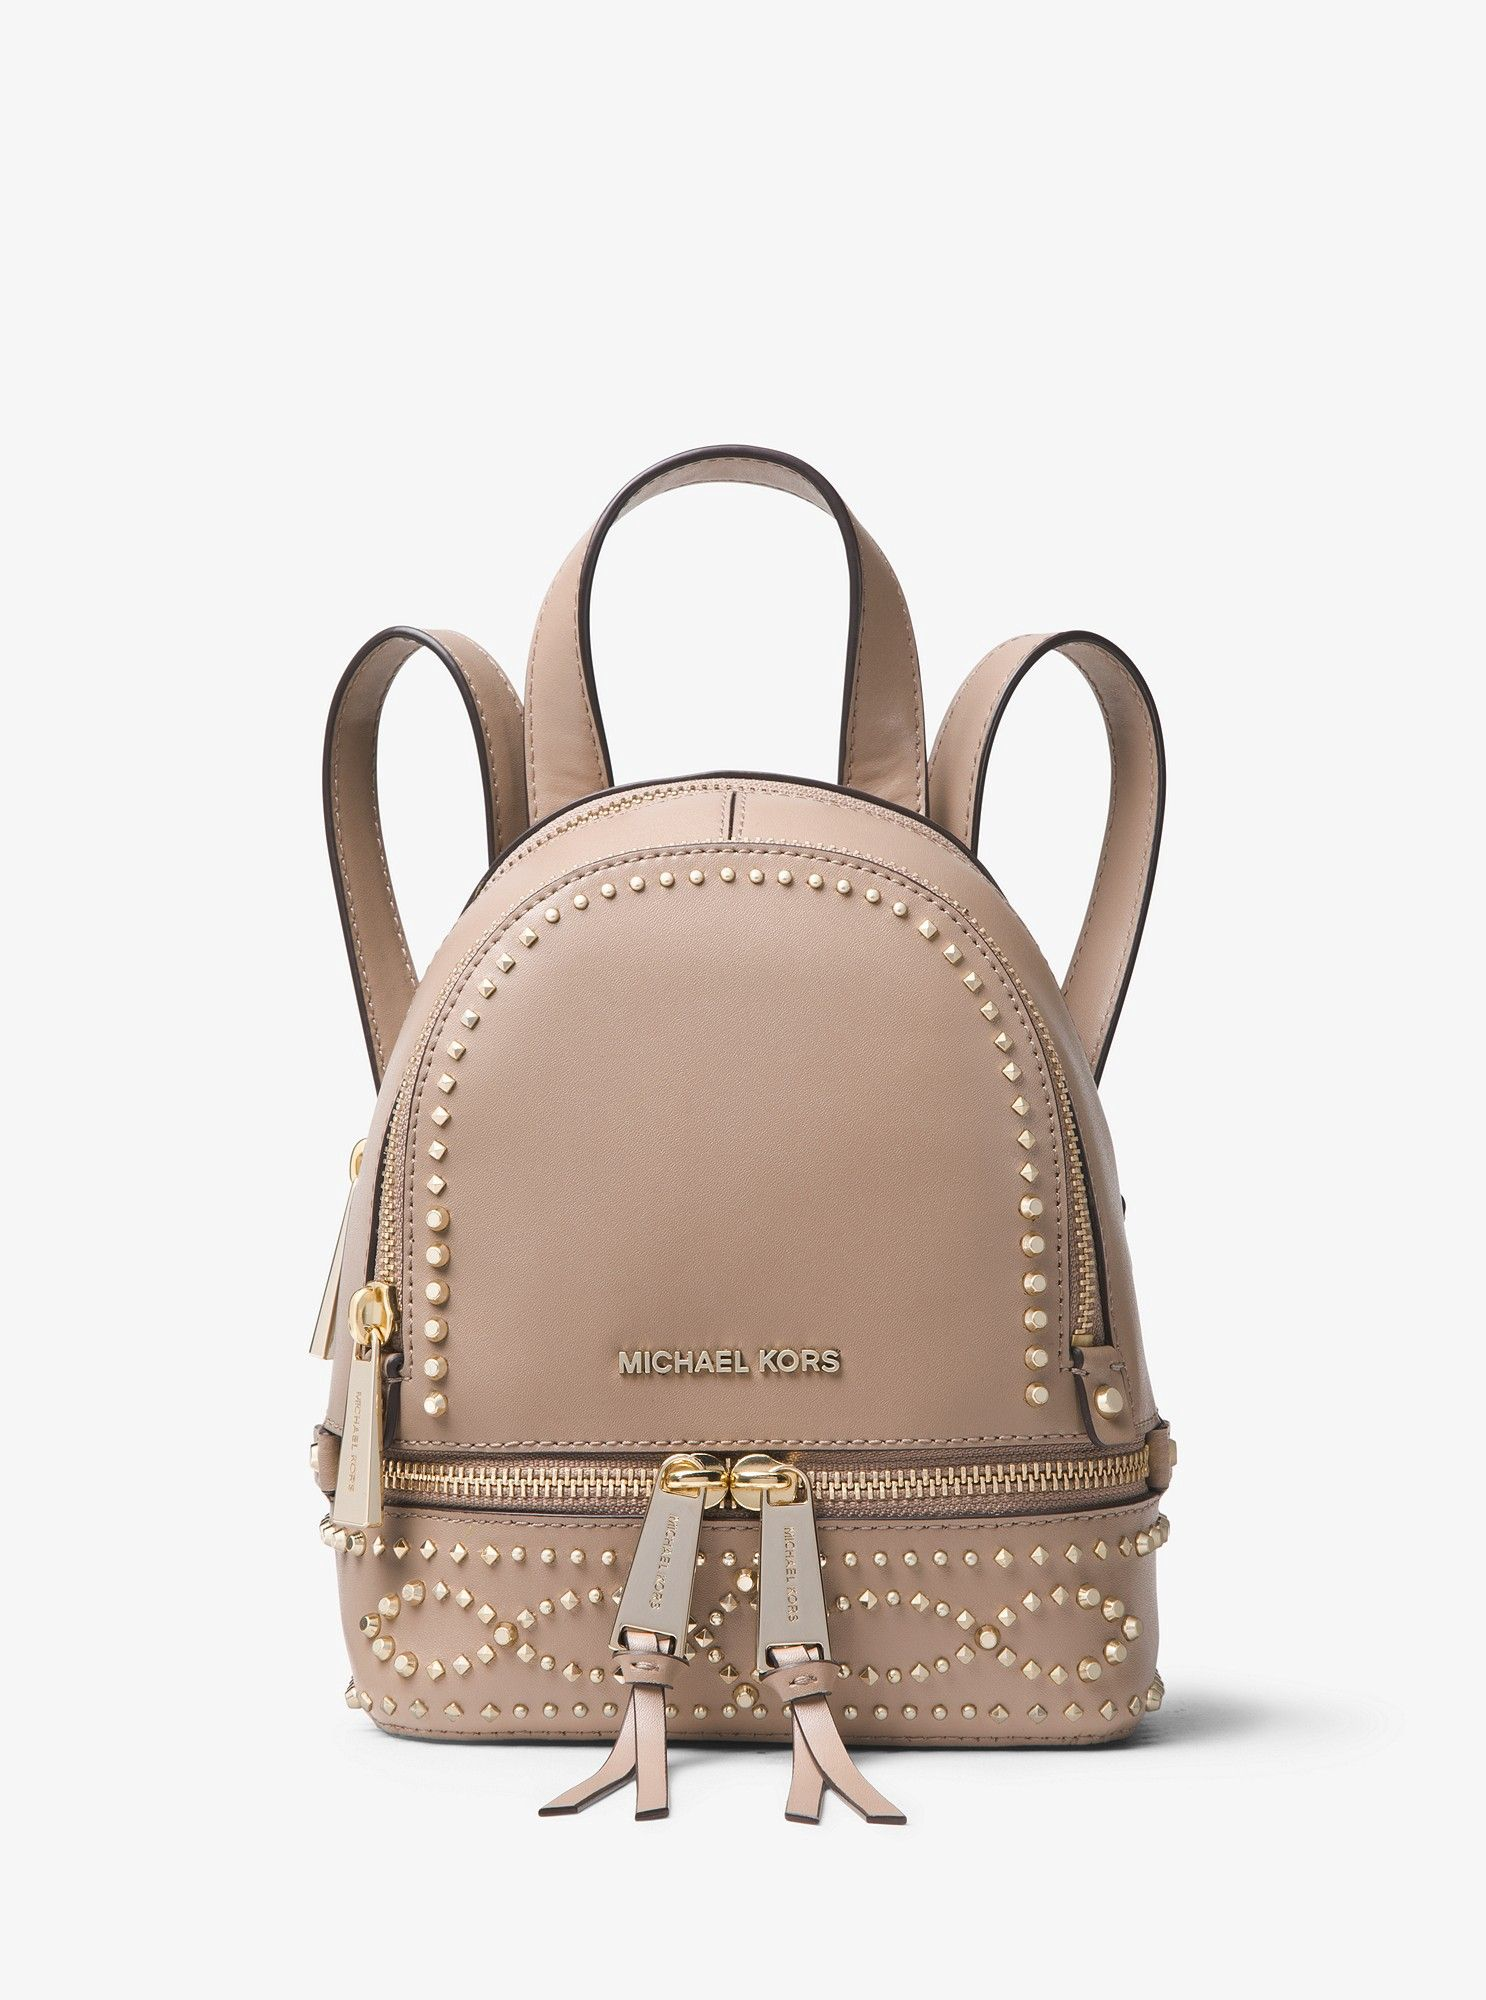 9233eac34e1694 Michael Kors Rhea Mini Studded Leather Backpack - Truffle | Products ...